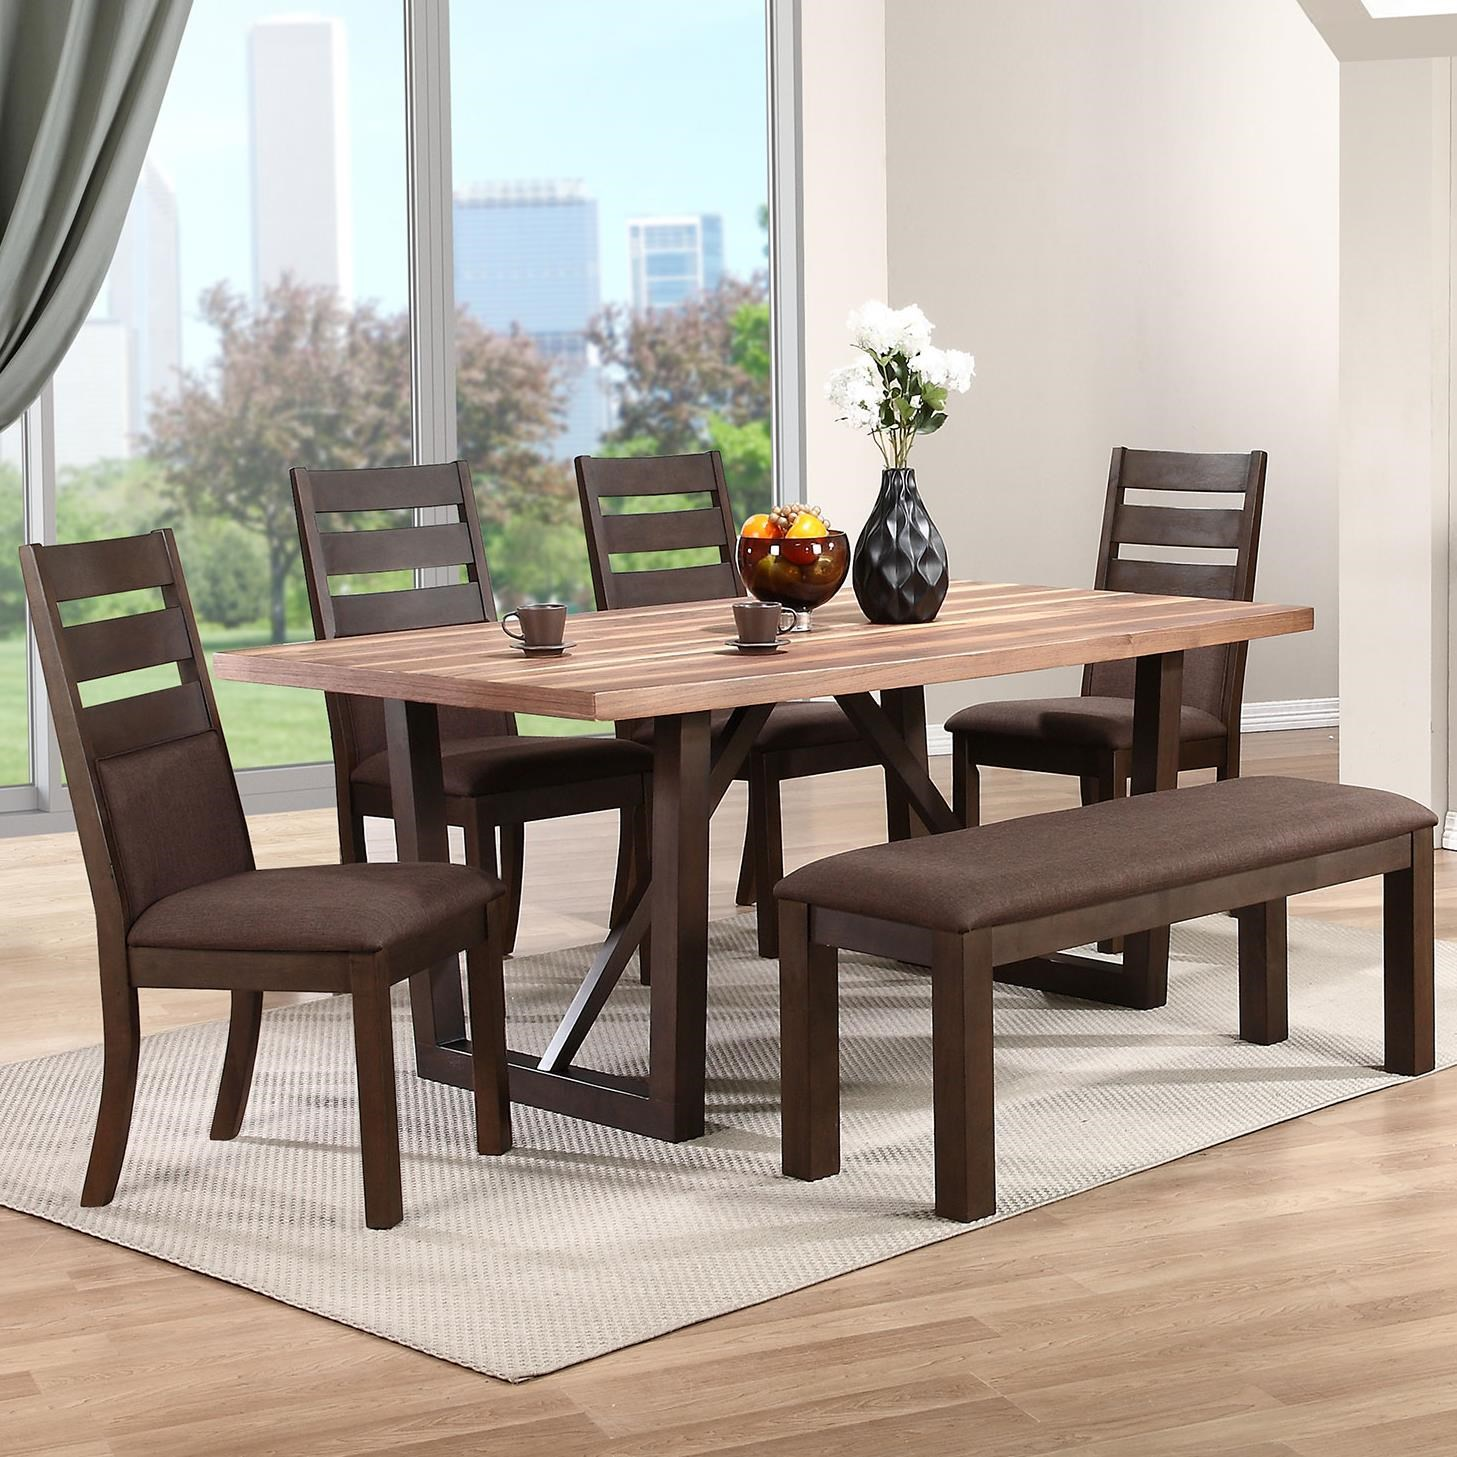 dining room table with upholstered bench. Winners Only Venice6 Piece Dining Set With Bench Room Table Upholstered